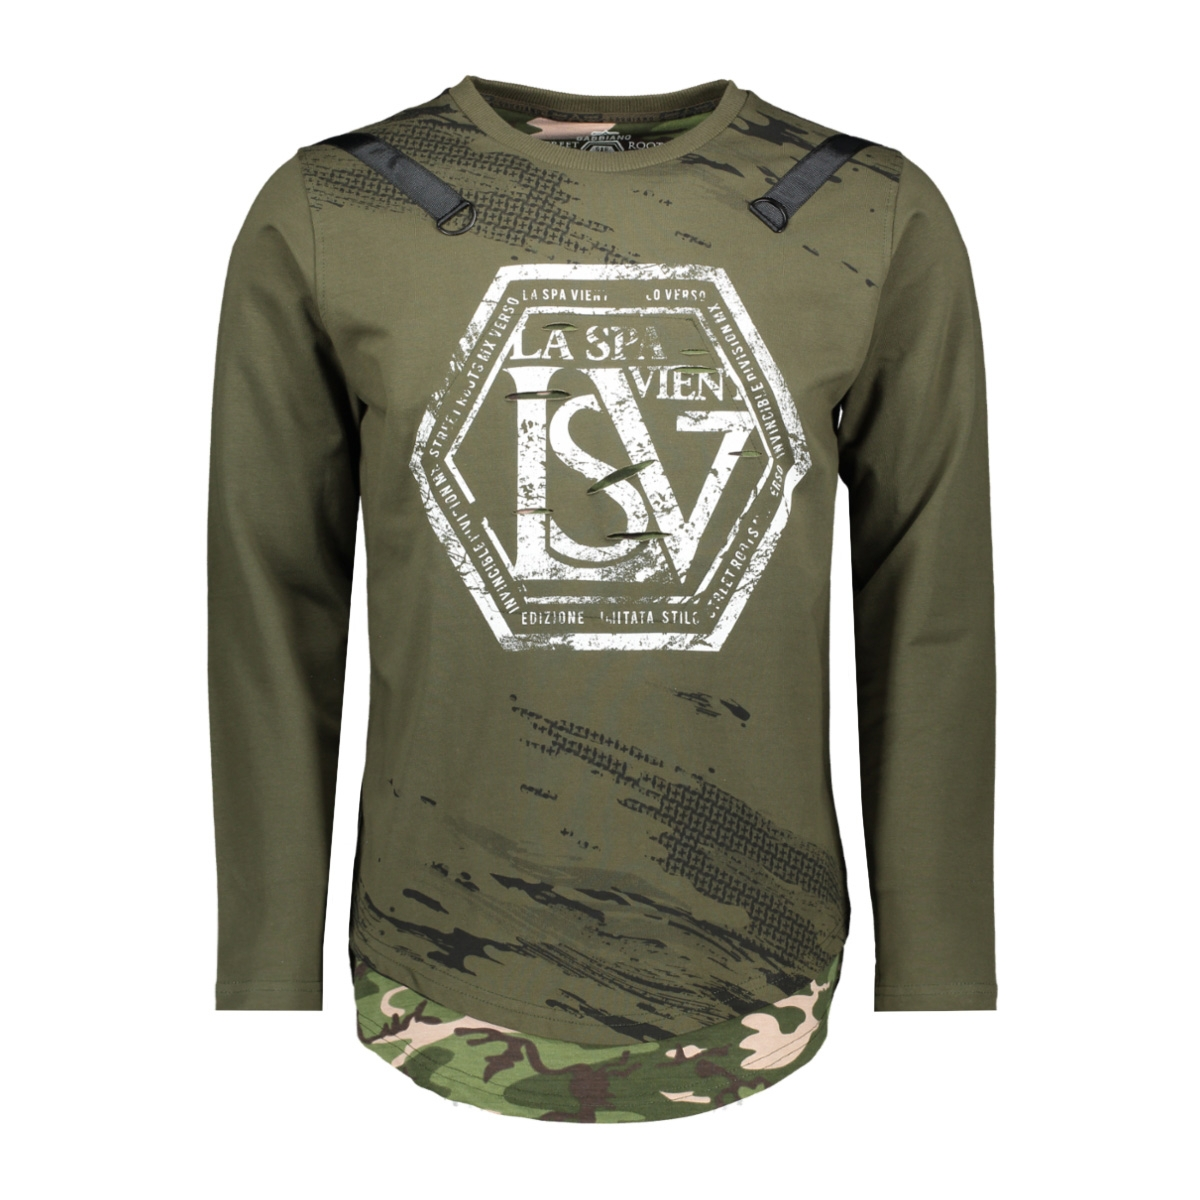 76106 gabbiano sweater army